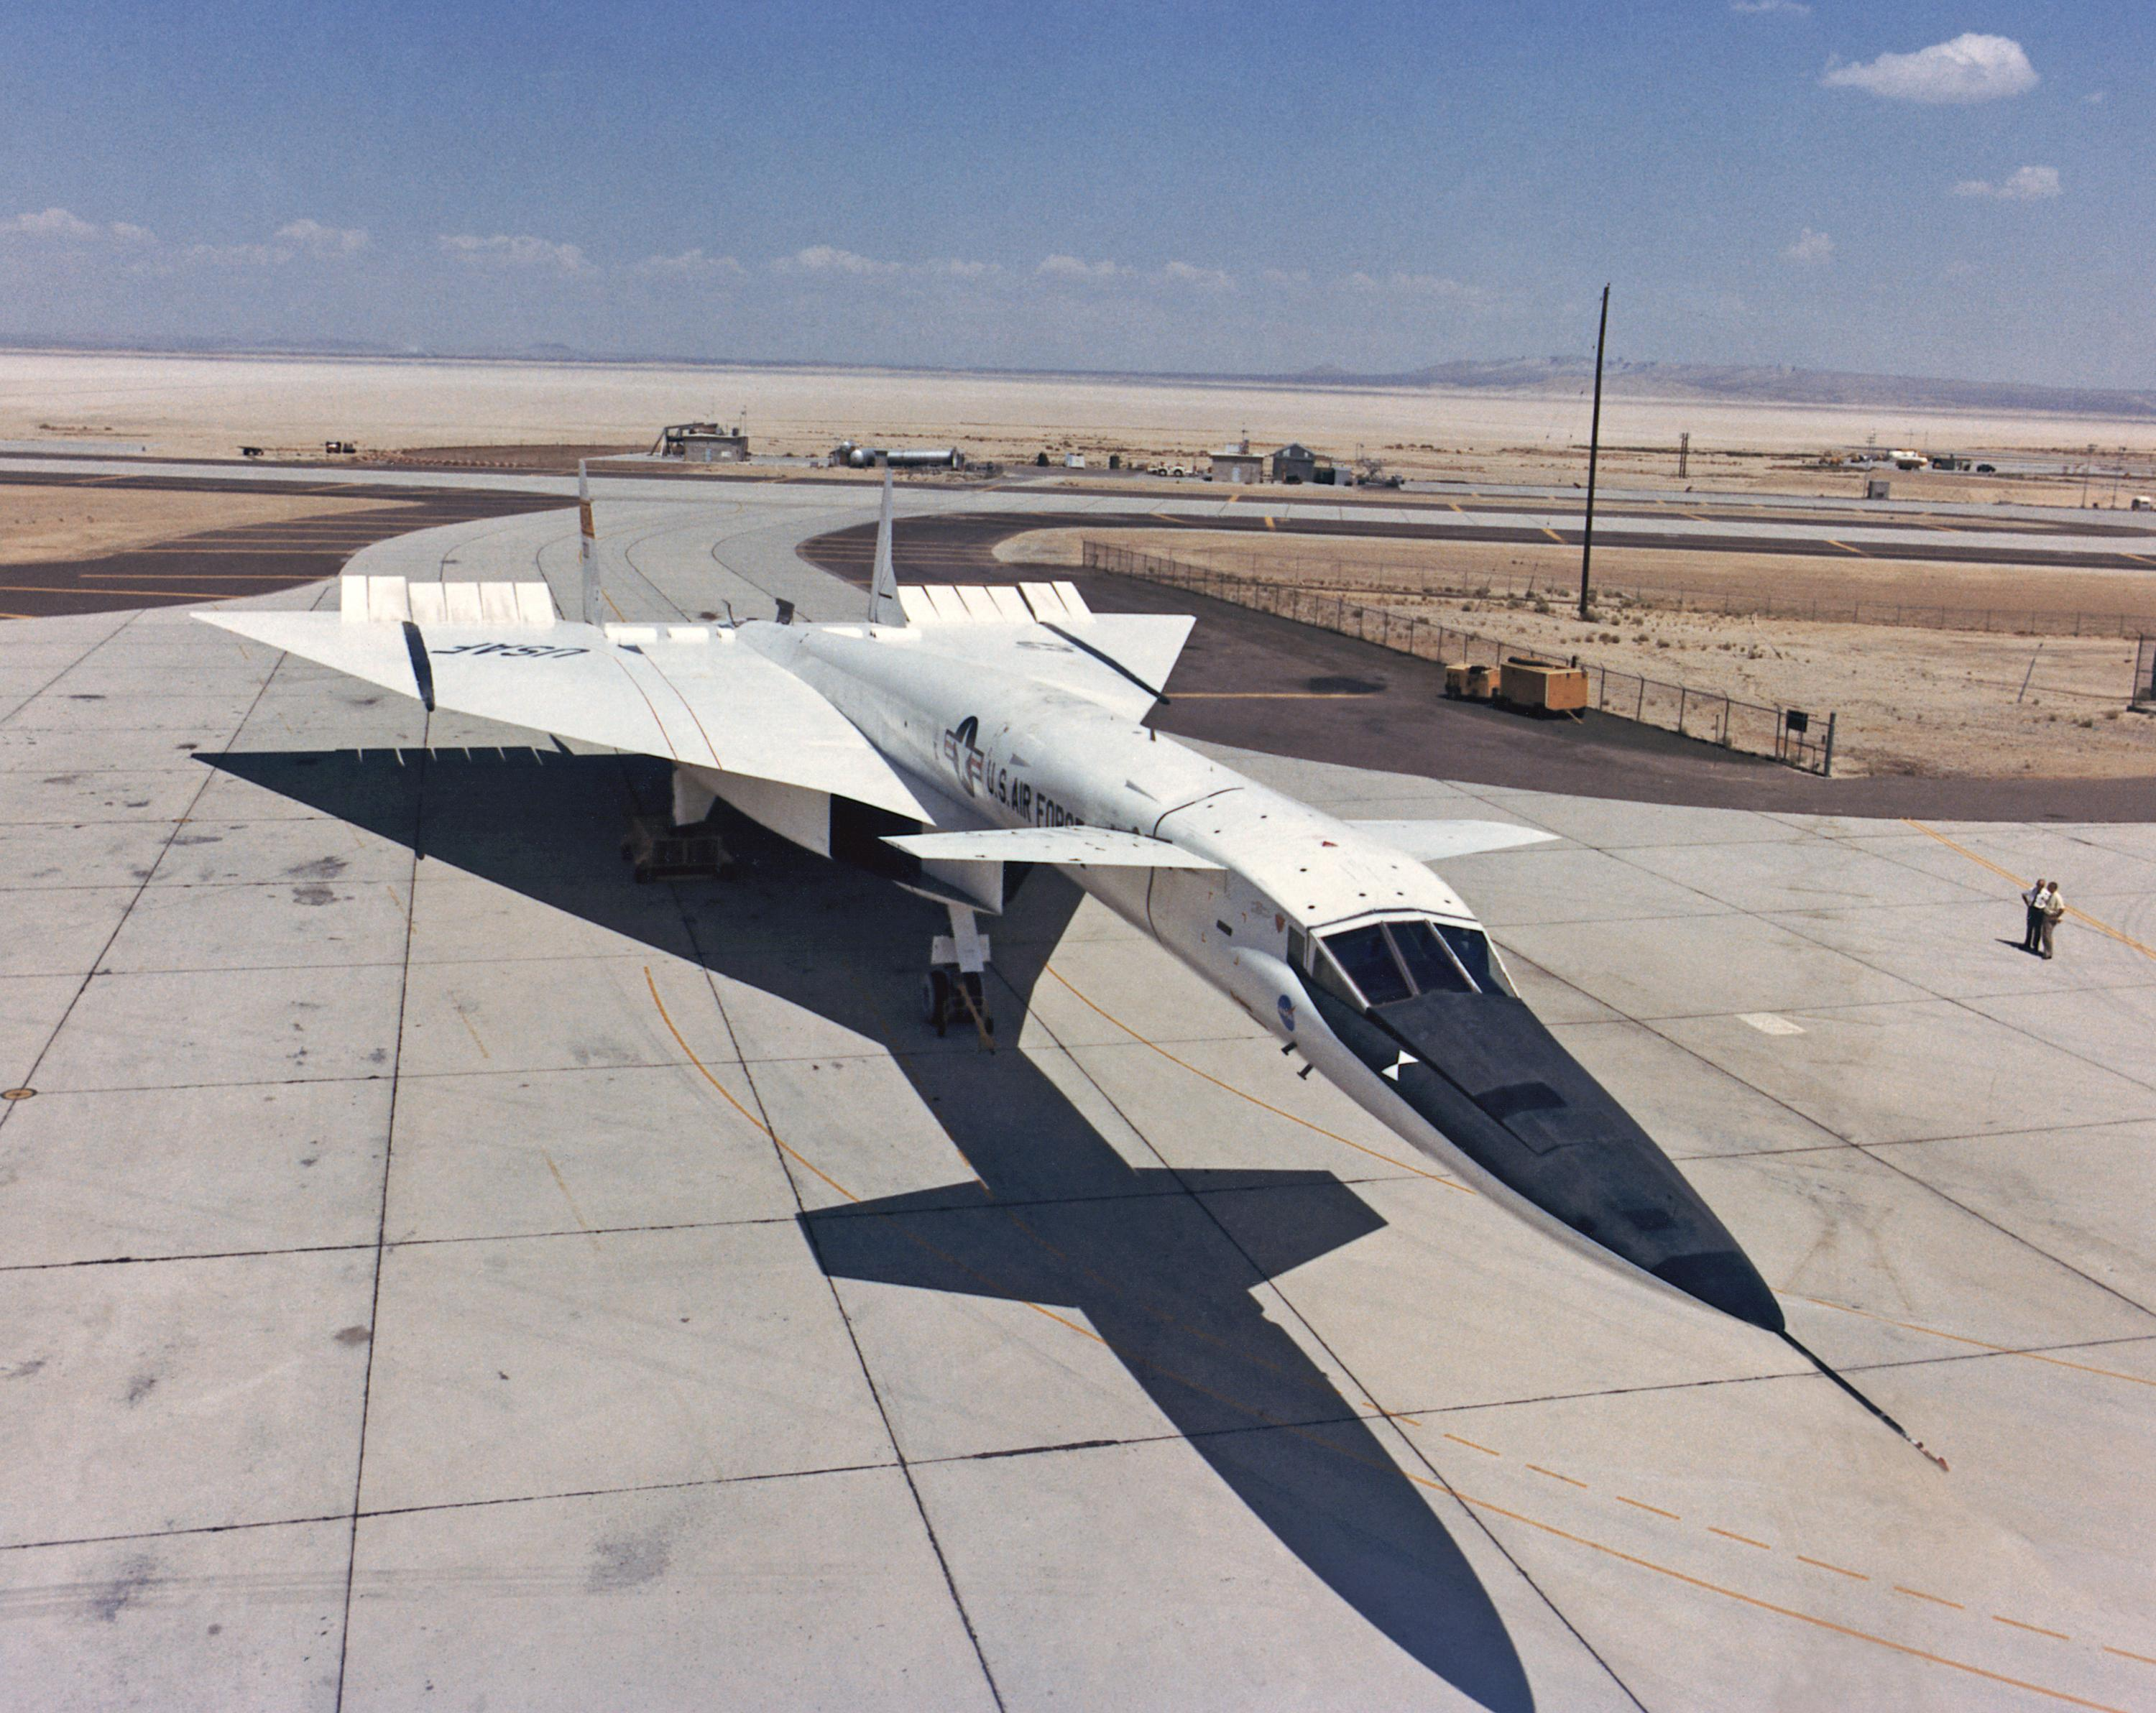 nasa fighter aircraft - photo #44